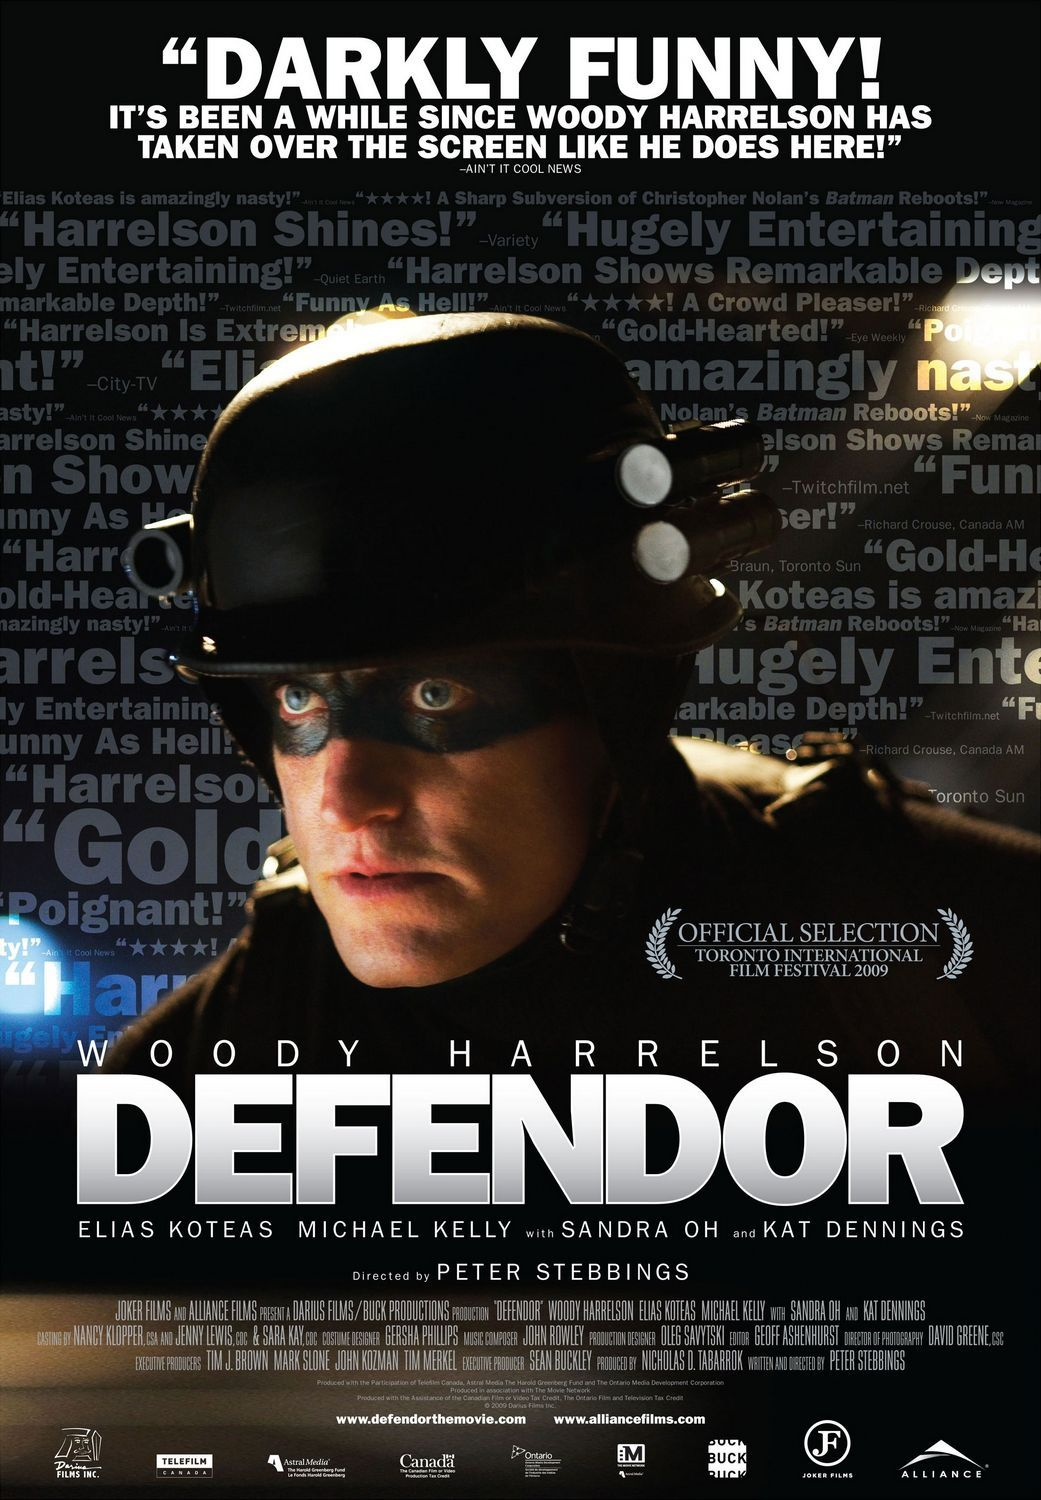 defendor_movie_poster.jpg